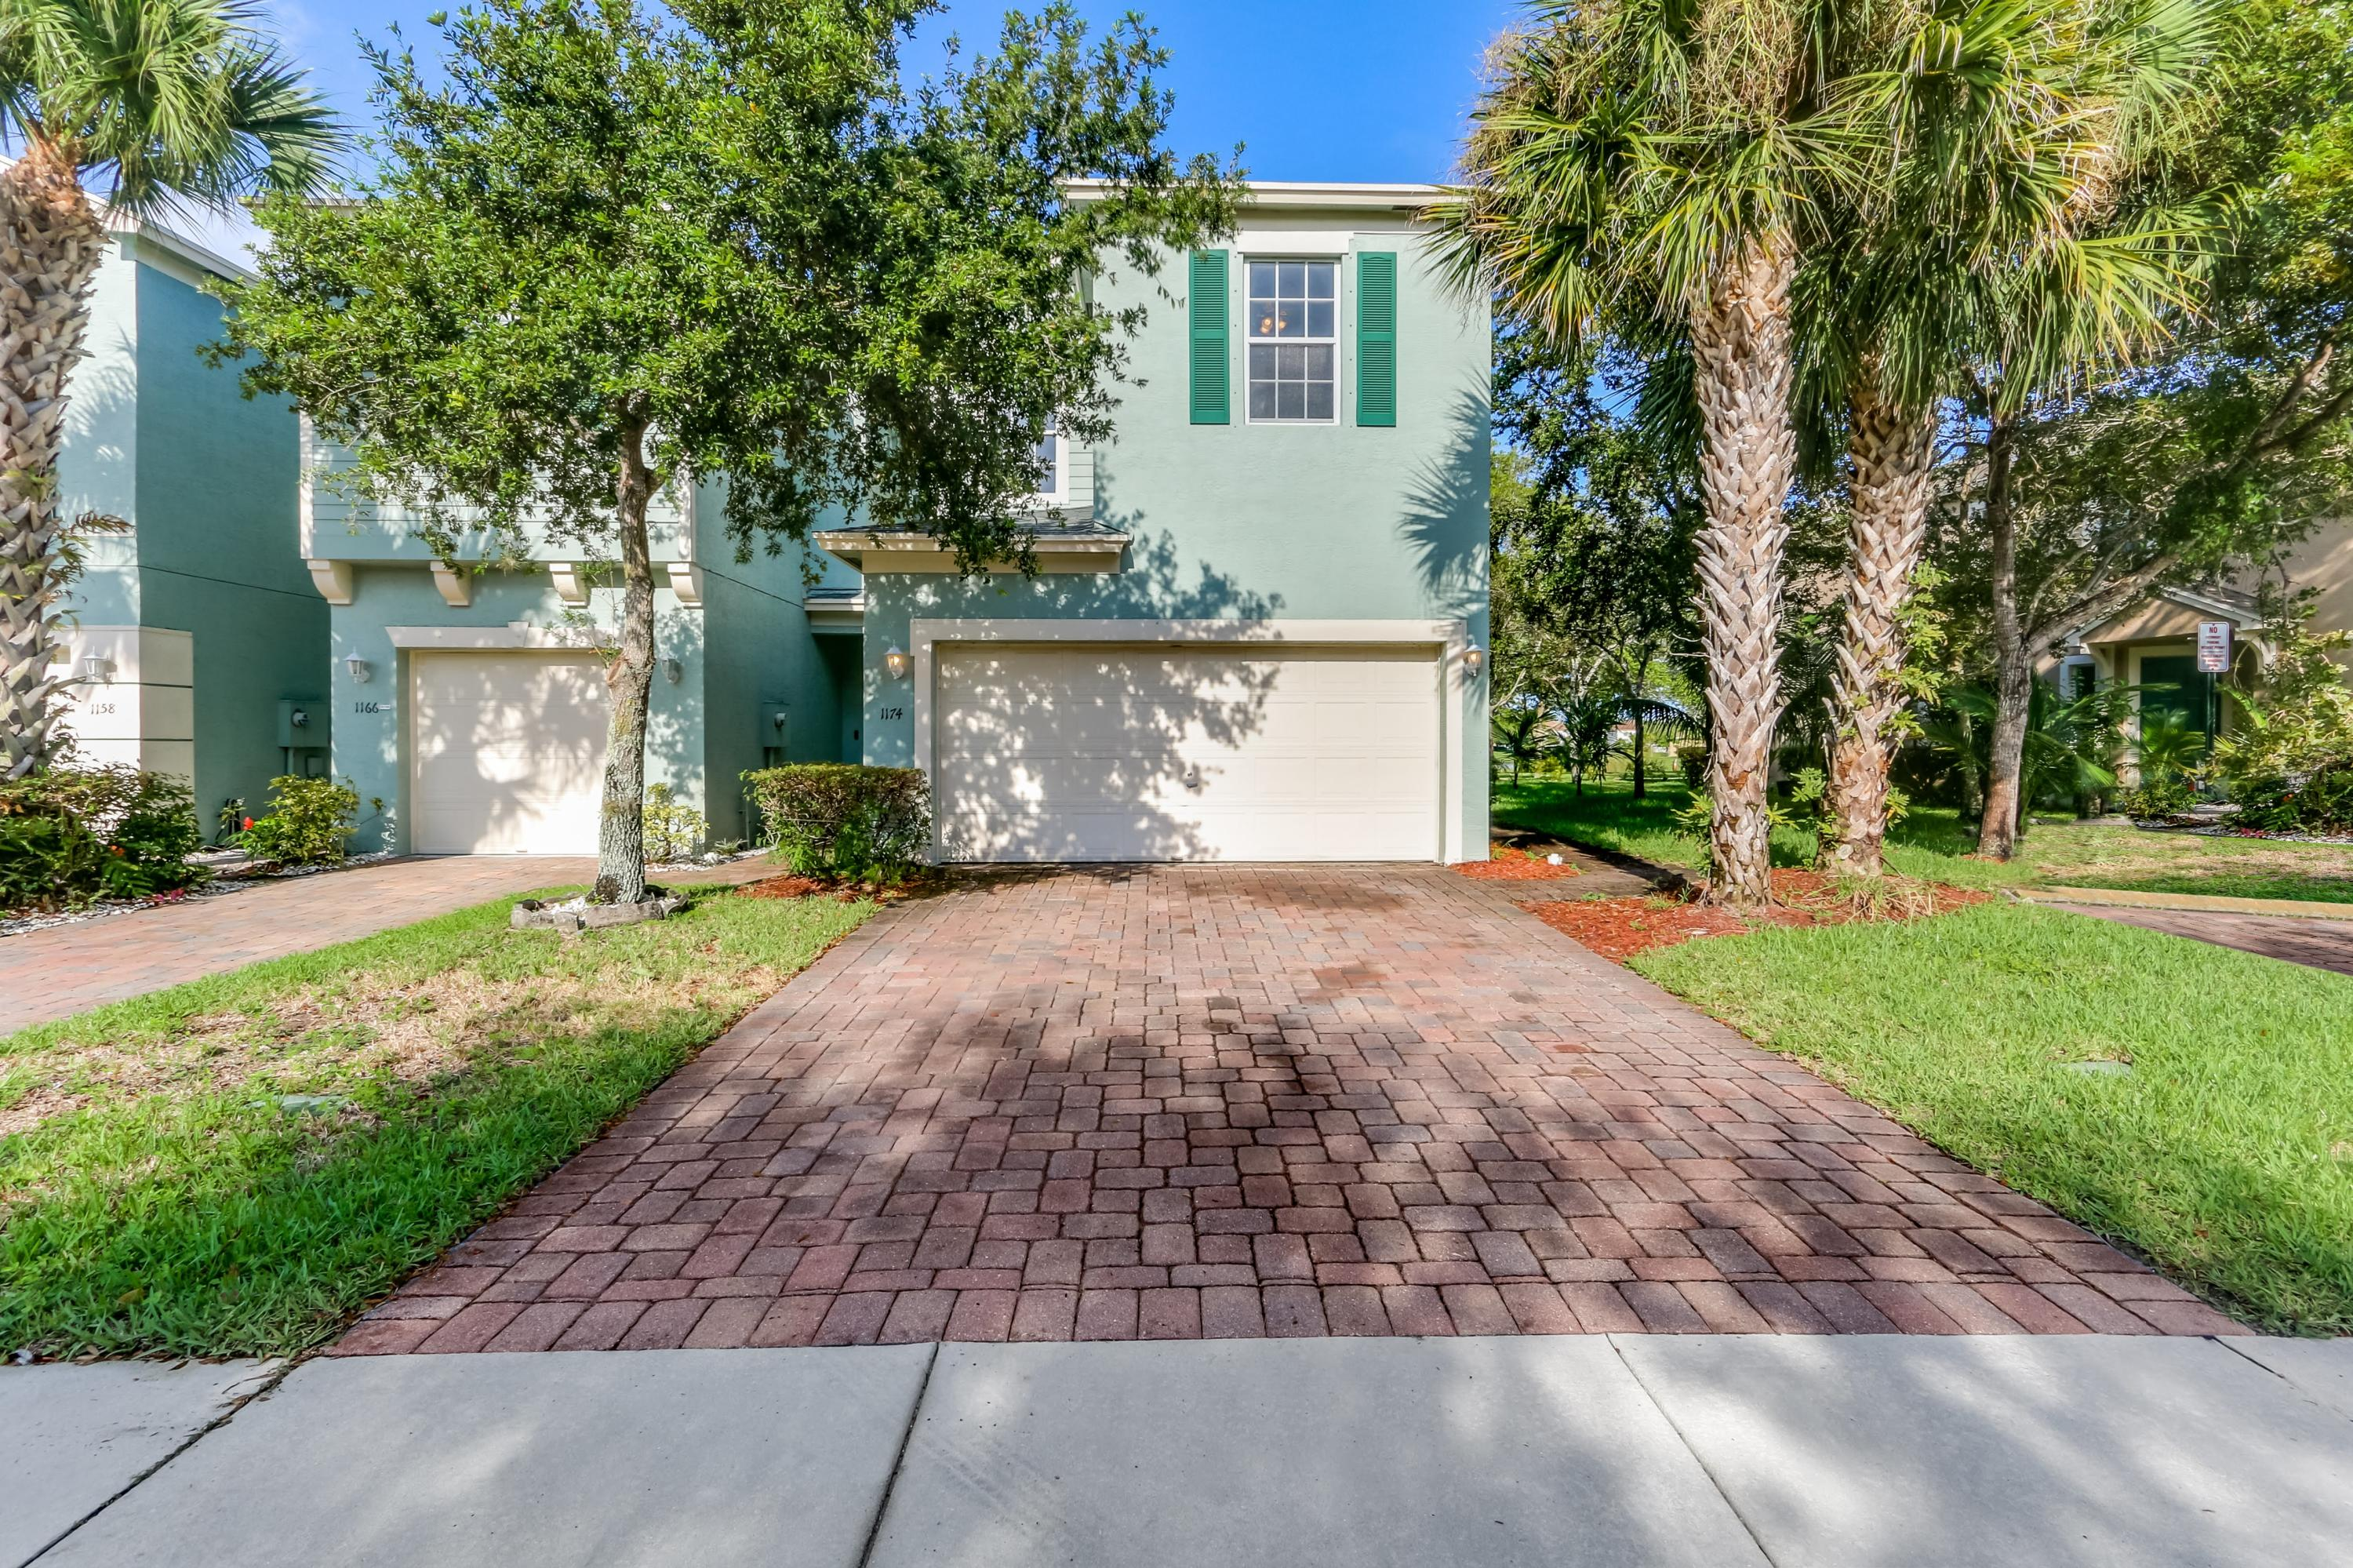 Home for sale in Victoria Woods Wyndham Park West Palm Beach Florida